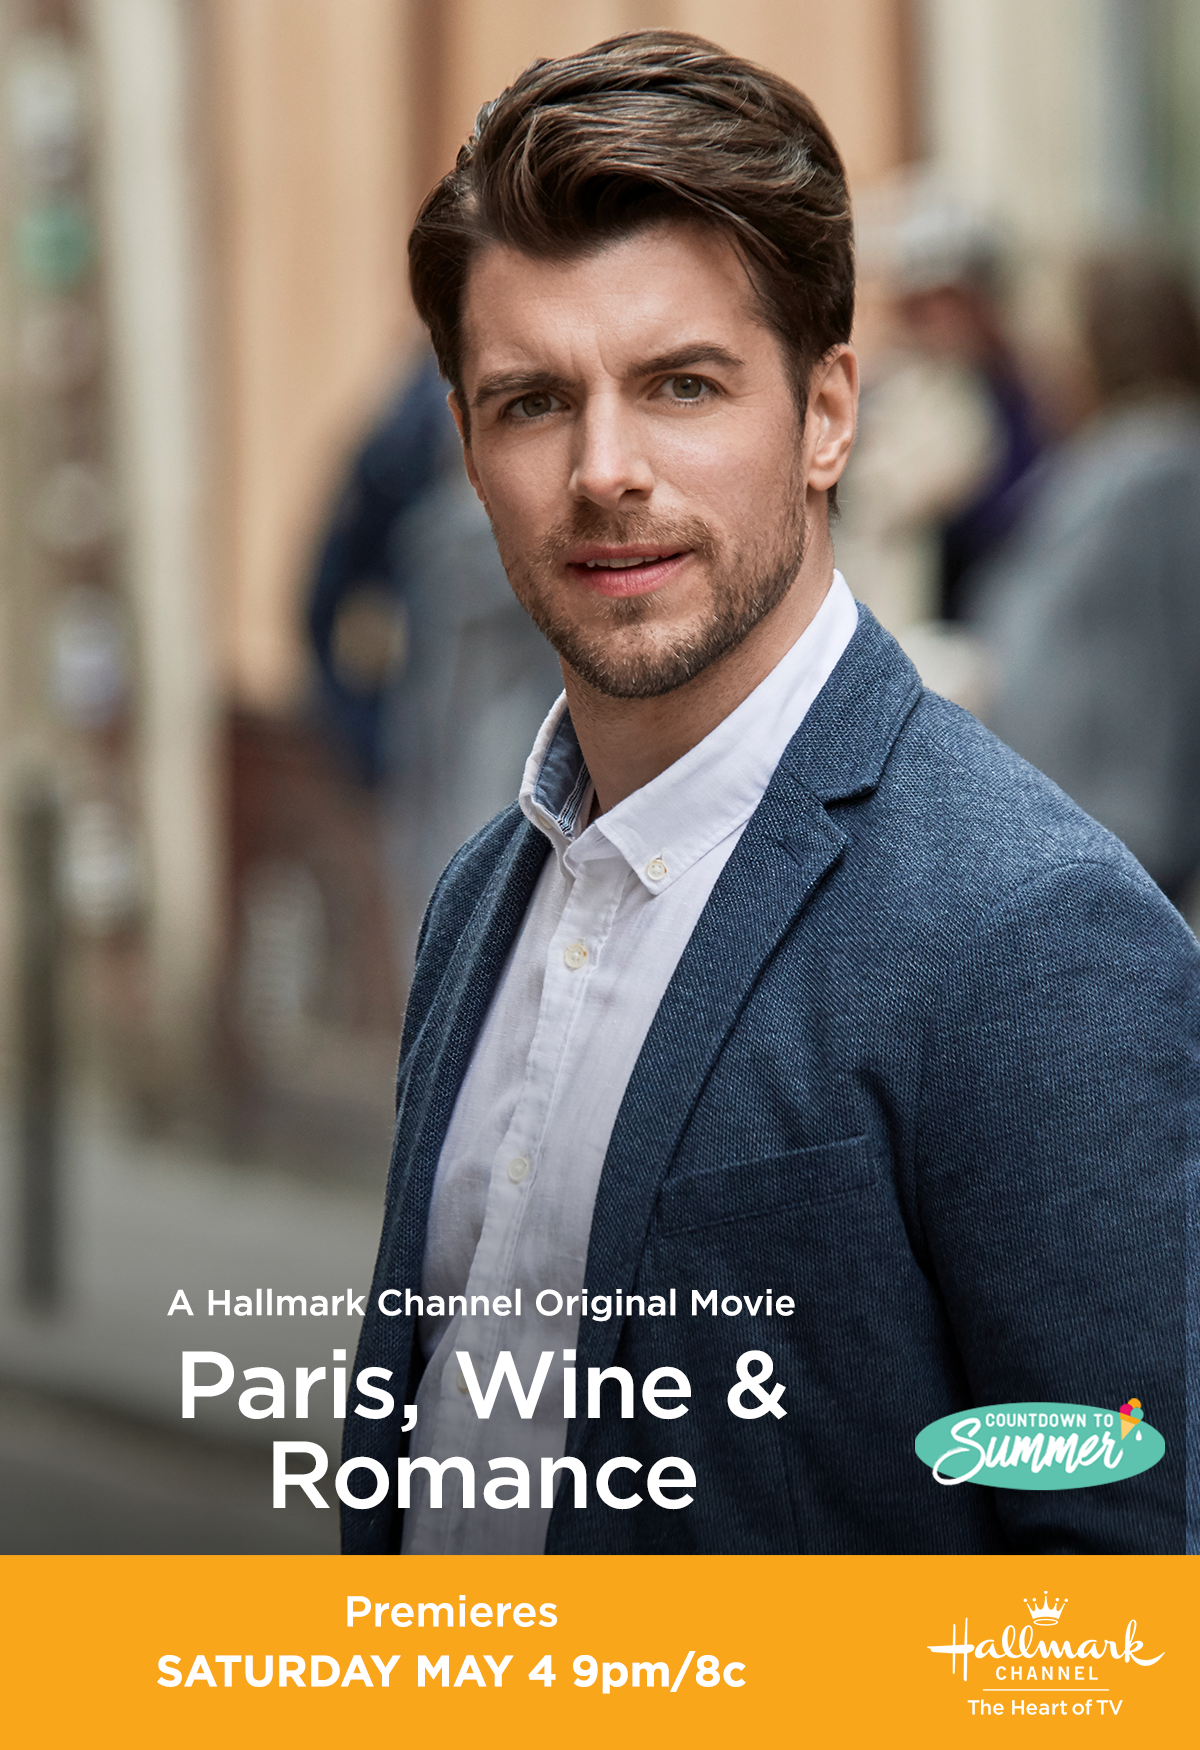 Jacques Dan Jeannotte Is Determined To Win The Annual Winemaking Competition But He Didn T Expect That His Riv Hallmark Channel Wine Romance Hallmark Movies